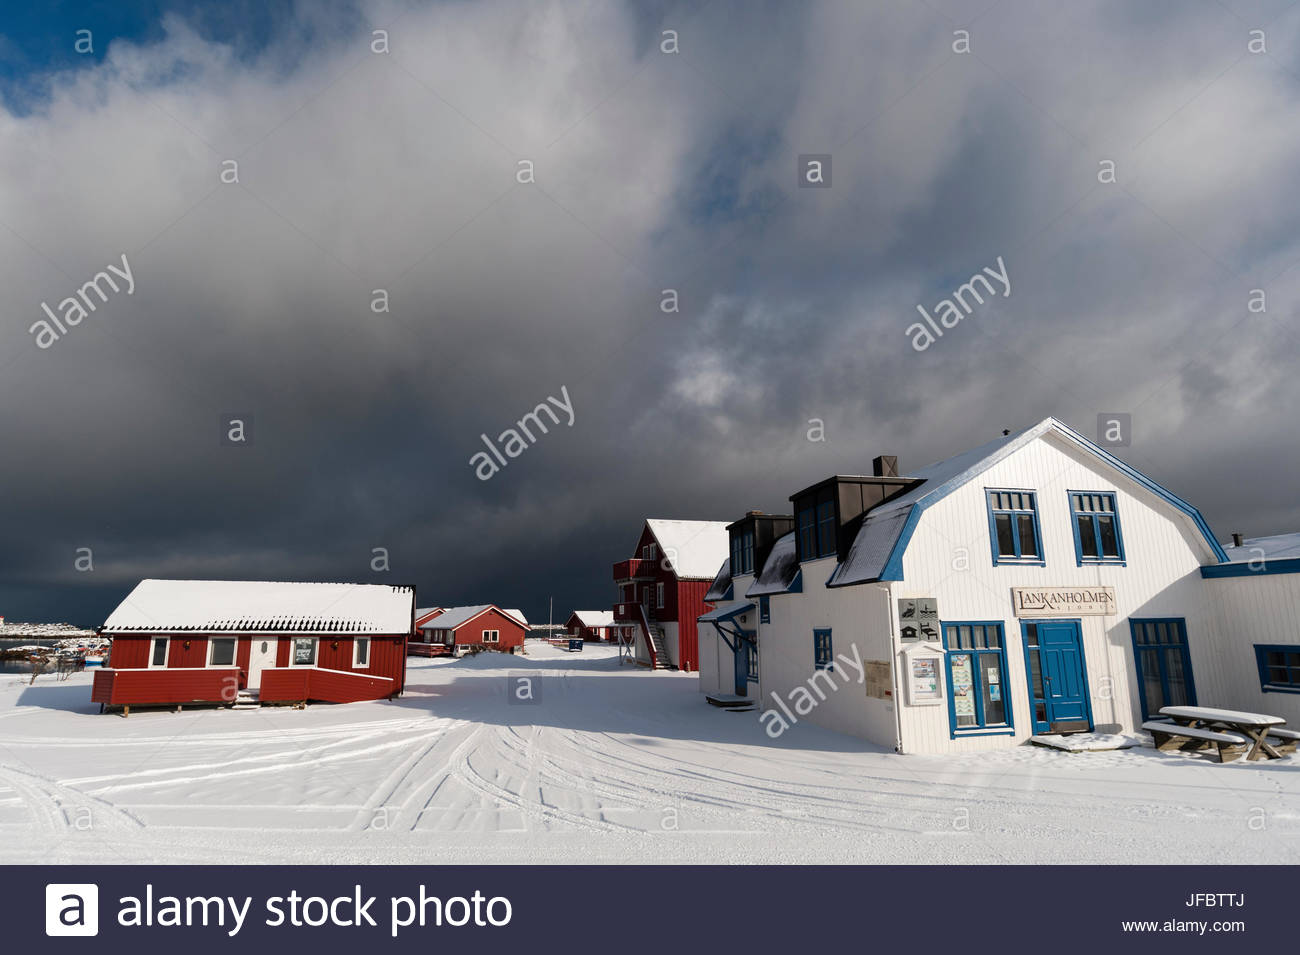 Snow-covered houses and roads under a cloudy sky. - Stock Image